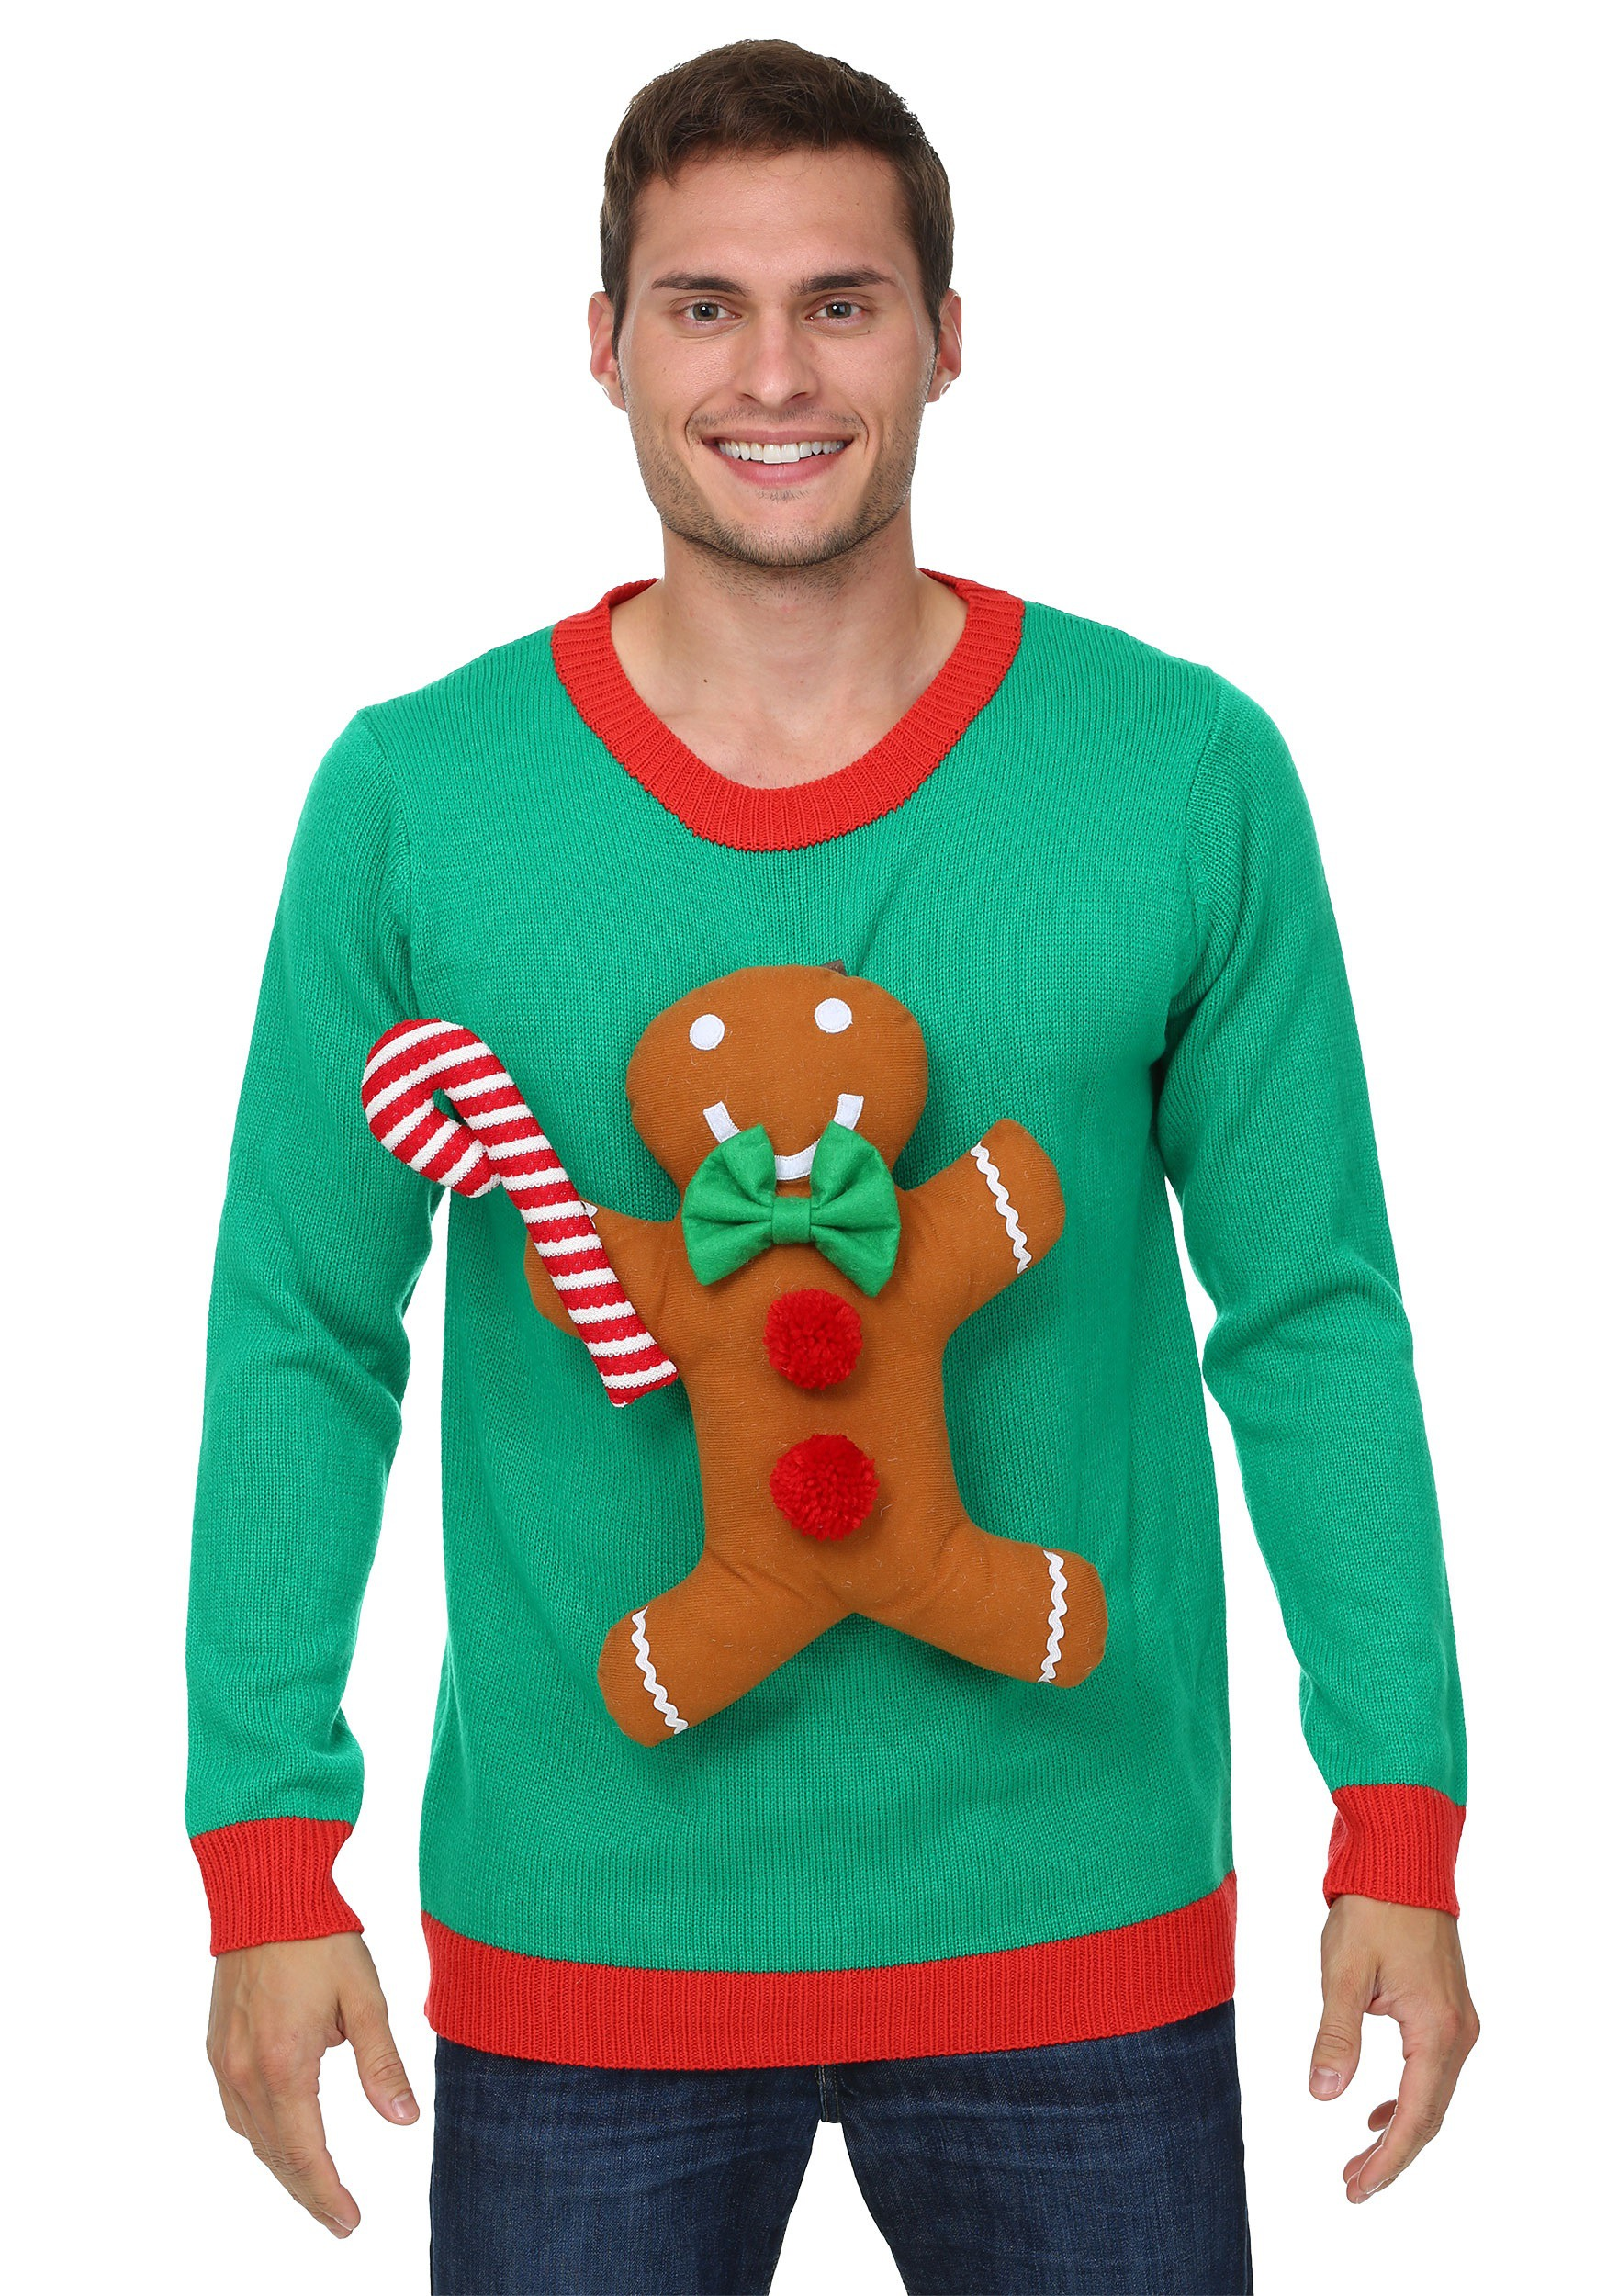 Official Cookie Tester Gingerbread Man Happy Adult Christmas Jumper Sweatshirt